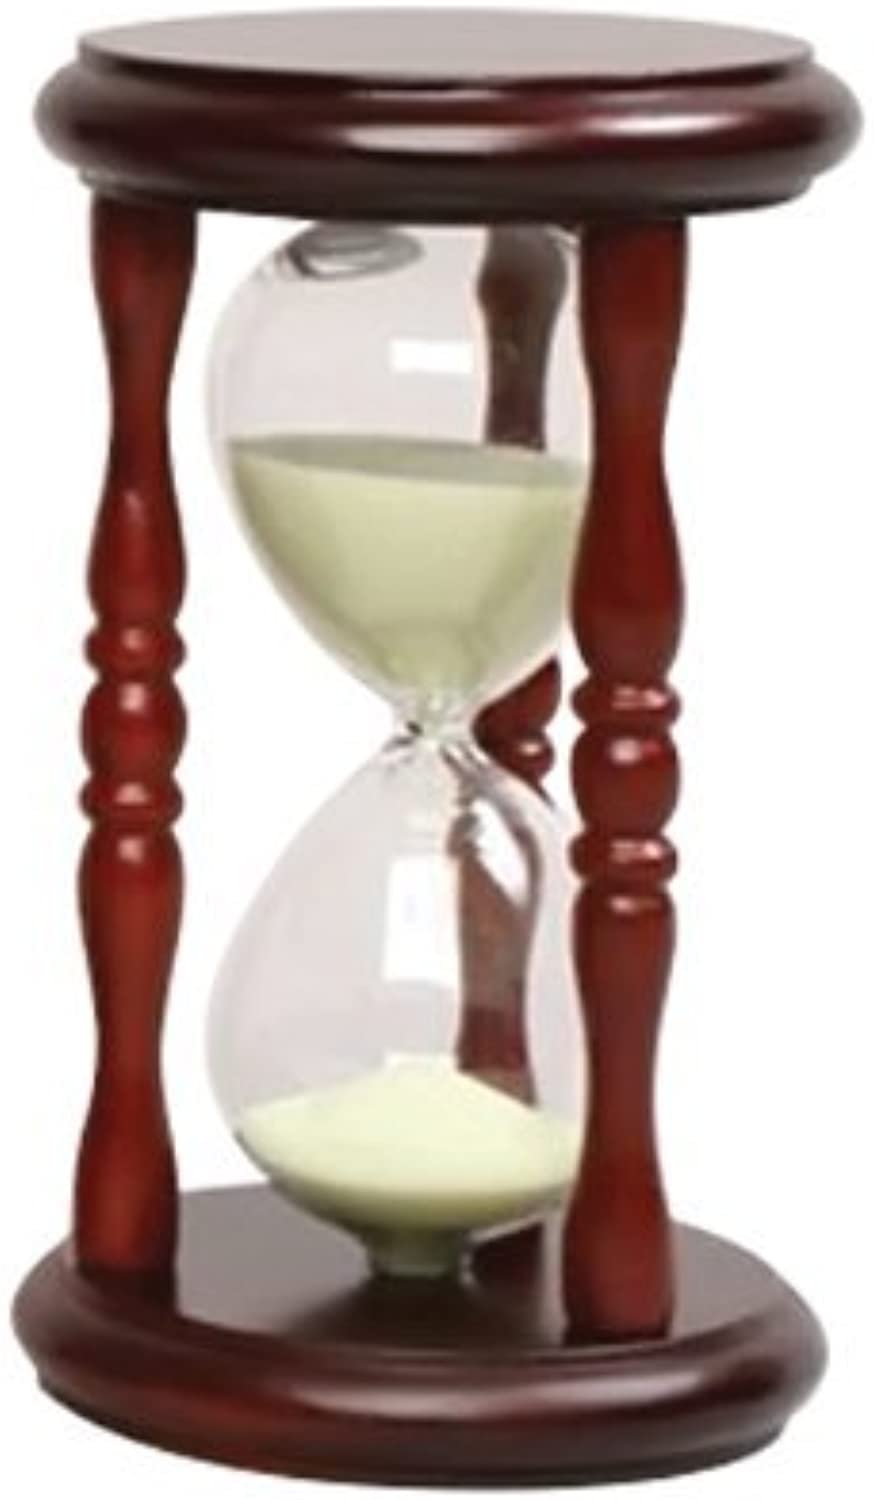 GW Schleidt Decorative 5 Minute Hourglass Sand Timer Gelb Sand in Wood Cherry Stand 6 Tall by G.W. Schleidt